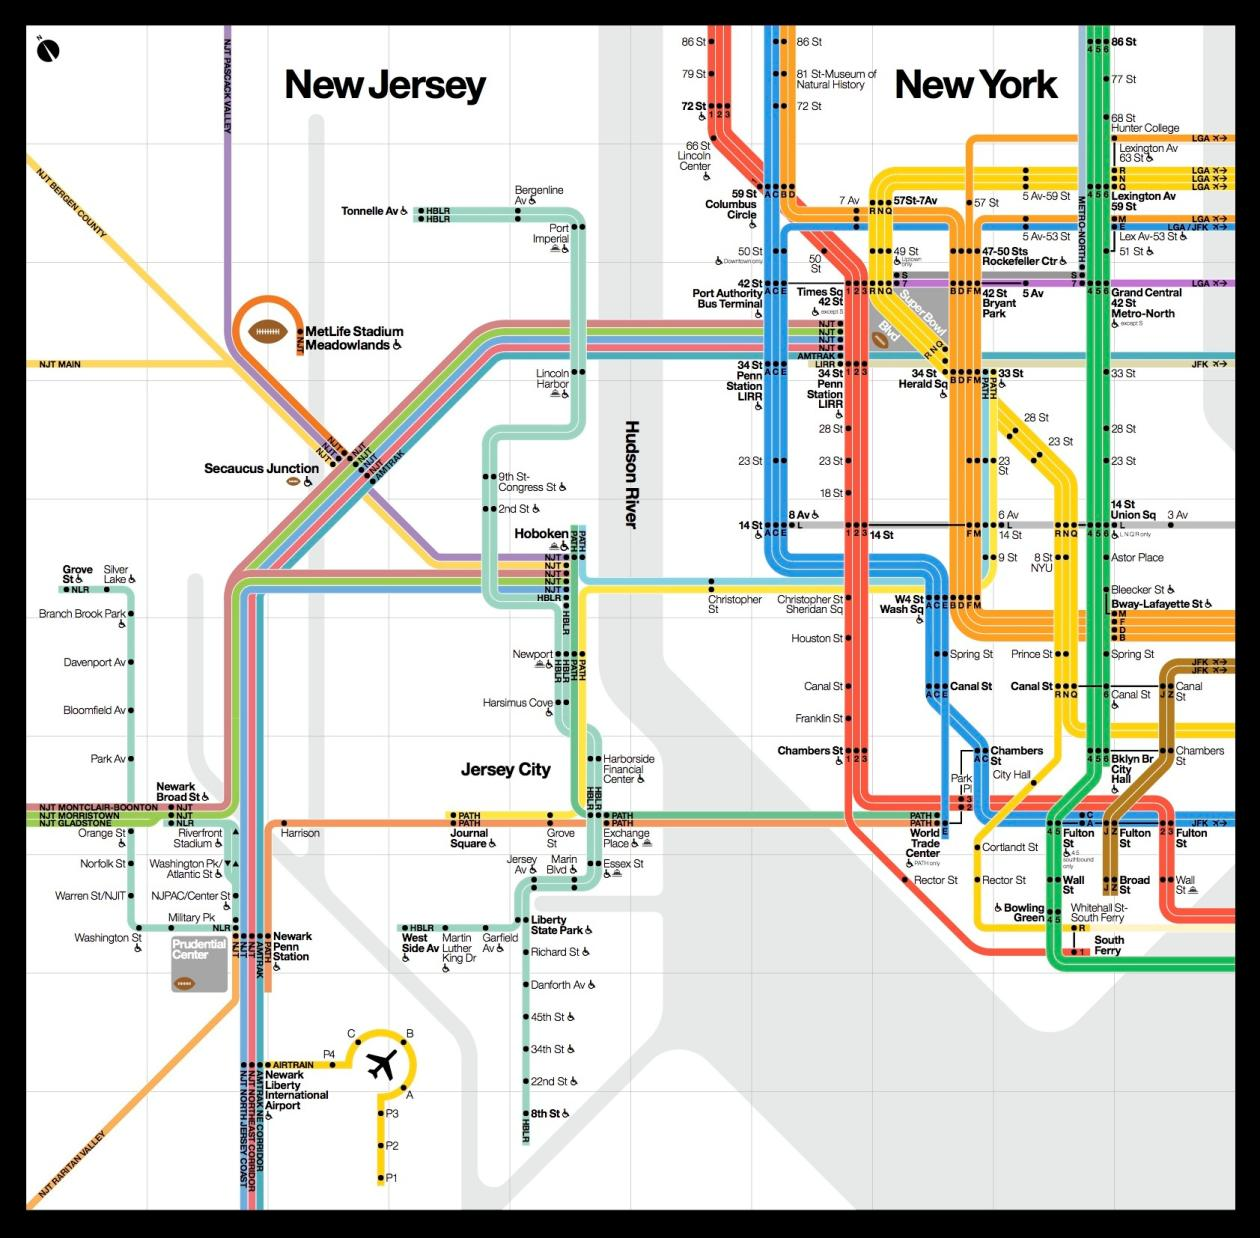 A beautiful new public transit map shows how New York and New Jersey ...